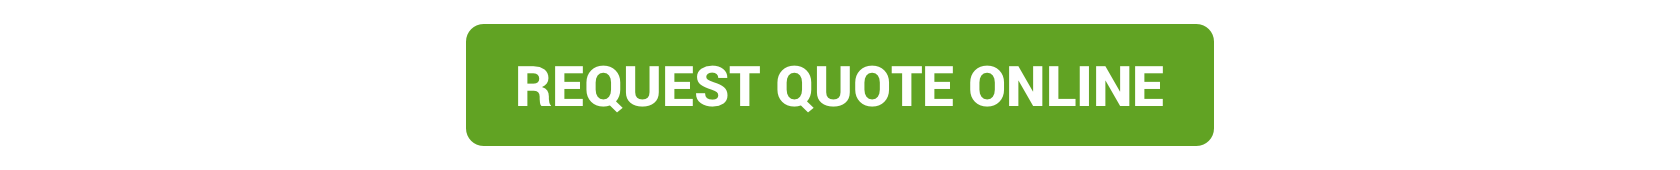 Request Quote Online Link